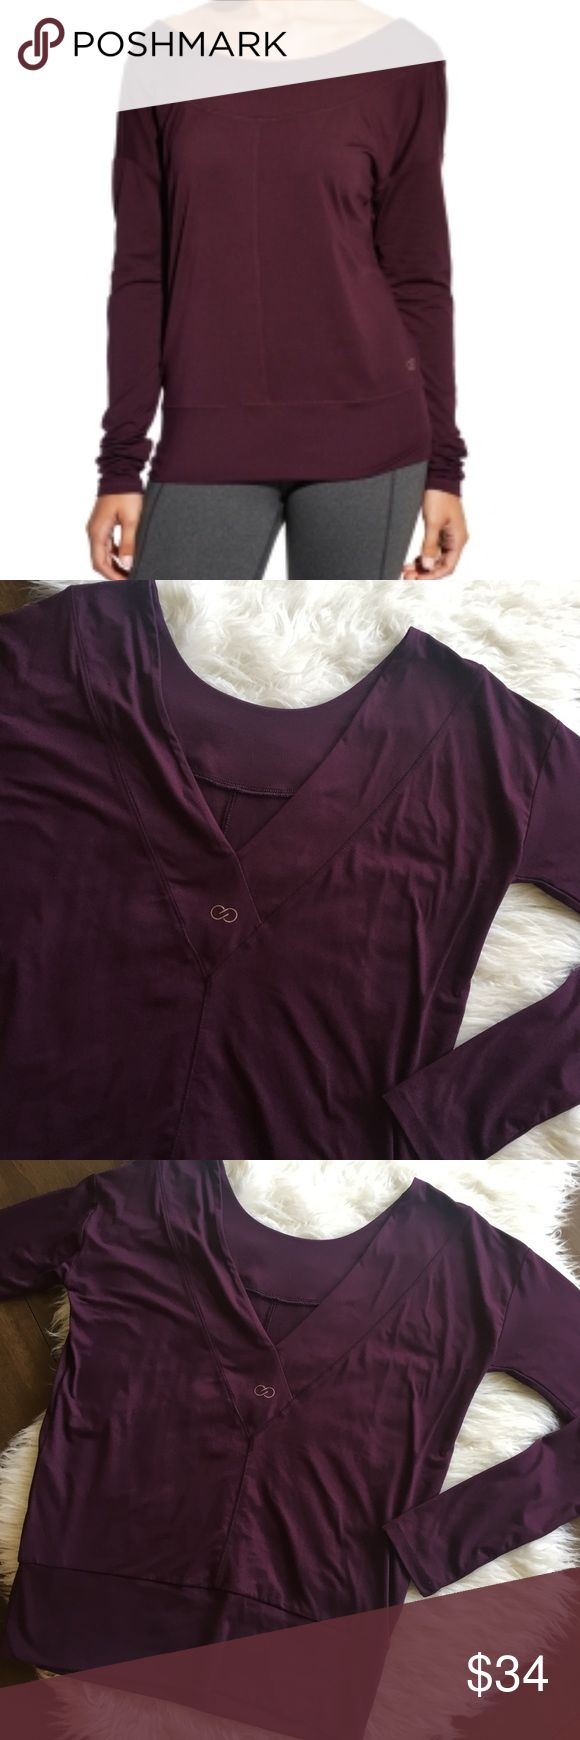 "CALIA Carrie Underwood Purple V Back Long Sleeve Deep purple long sleeve top with a v back detail. Excellent condition. 💫 Smoke free home. Offers are welcome though the ""offer"" button. No negotiations in the comments. No trades/holds/modeling requests, please. 1 day average ship time. Bundle multiple items for a discount and only pay for shipping once! CALIA by Carrie Underwood Tops"